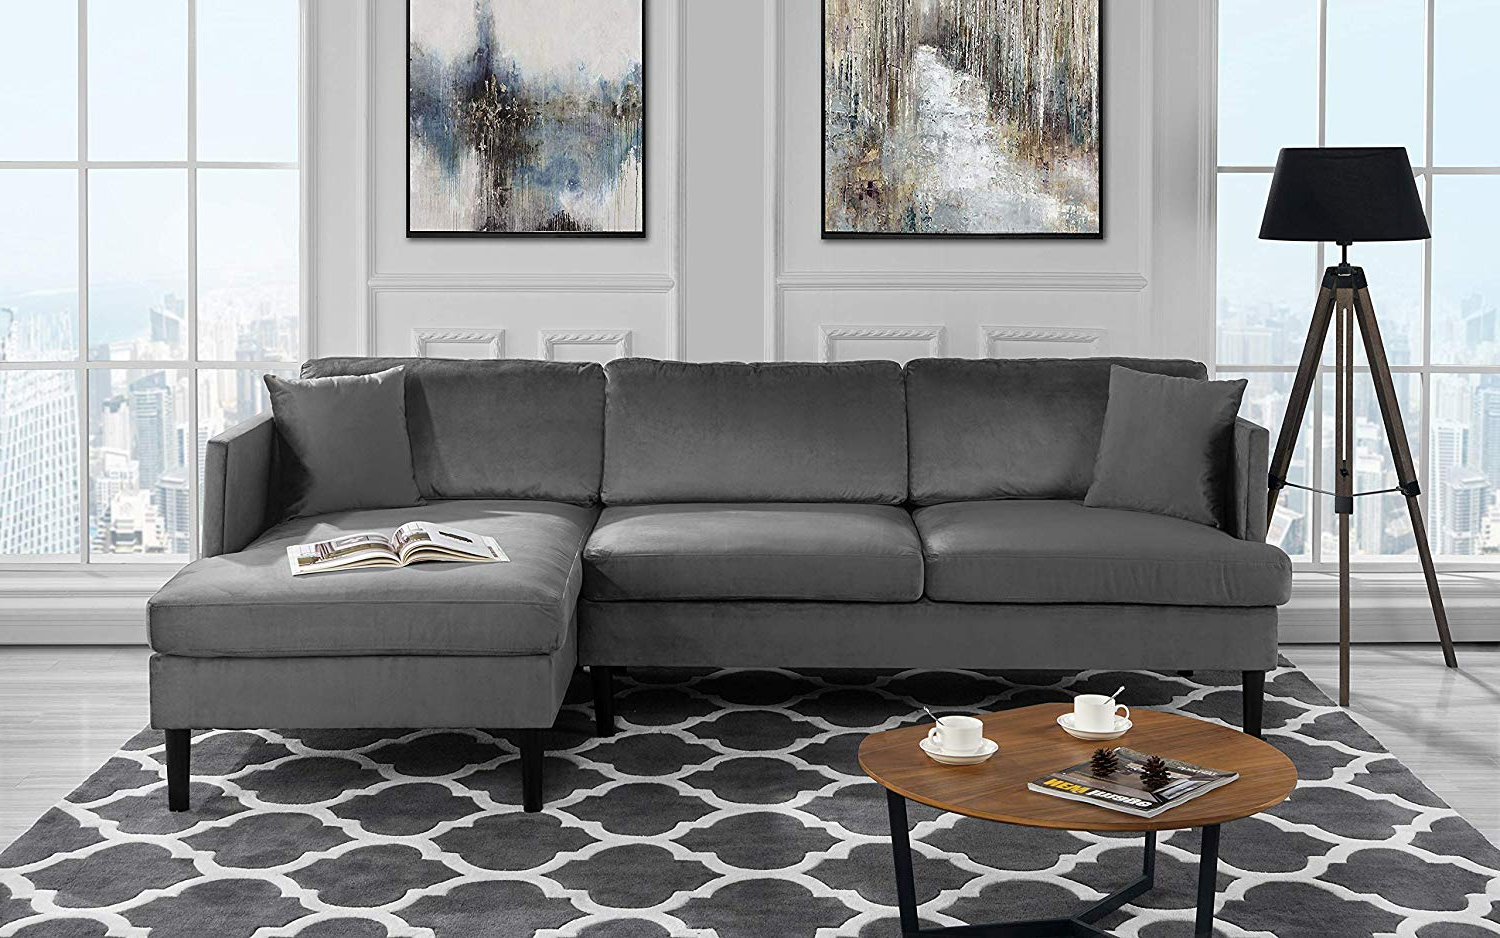 Cheap Grey Couch Sectional, Find Grey Couch Sectional Within Latest Florence Mid Century Modern Velvet Right Sectional Sofas (View 9 of 20)